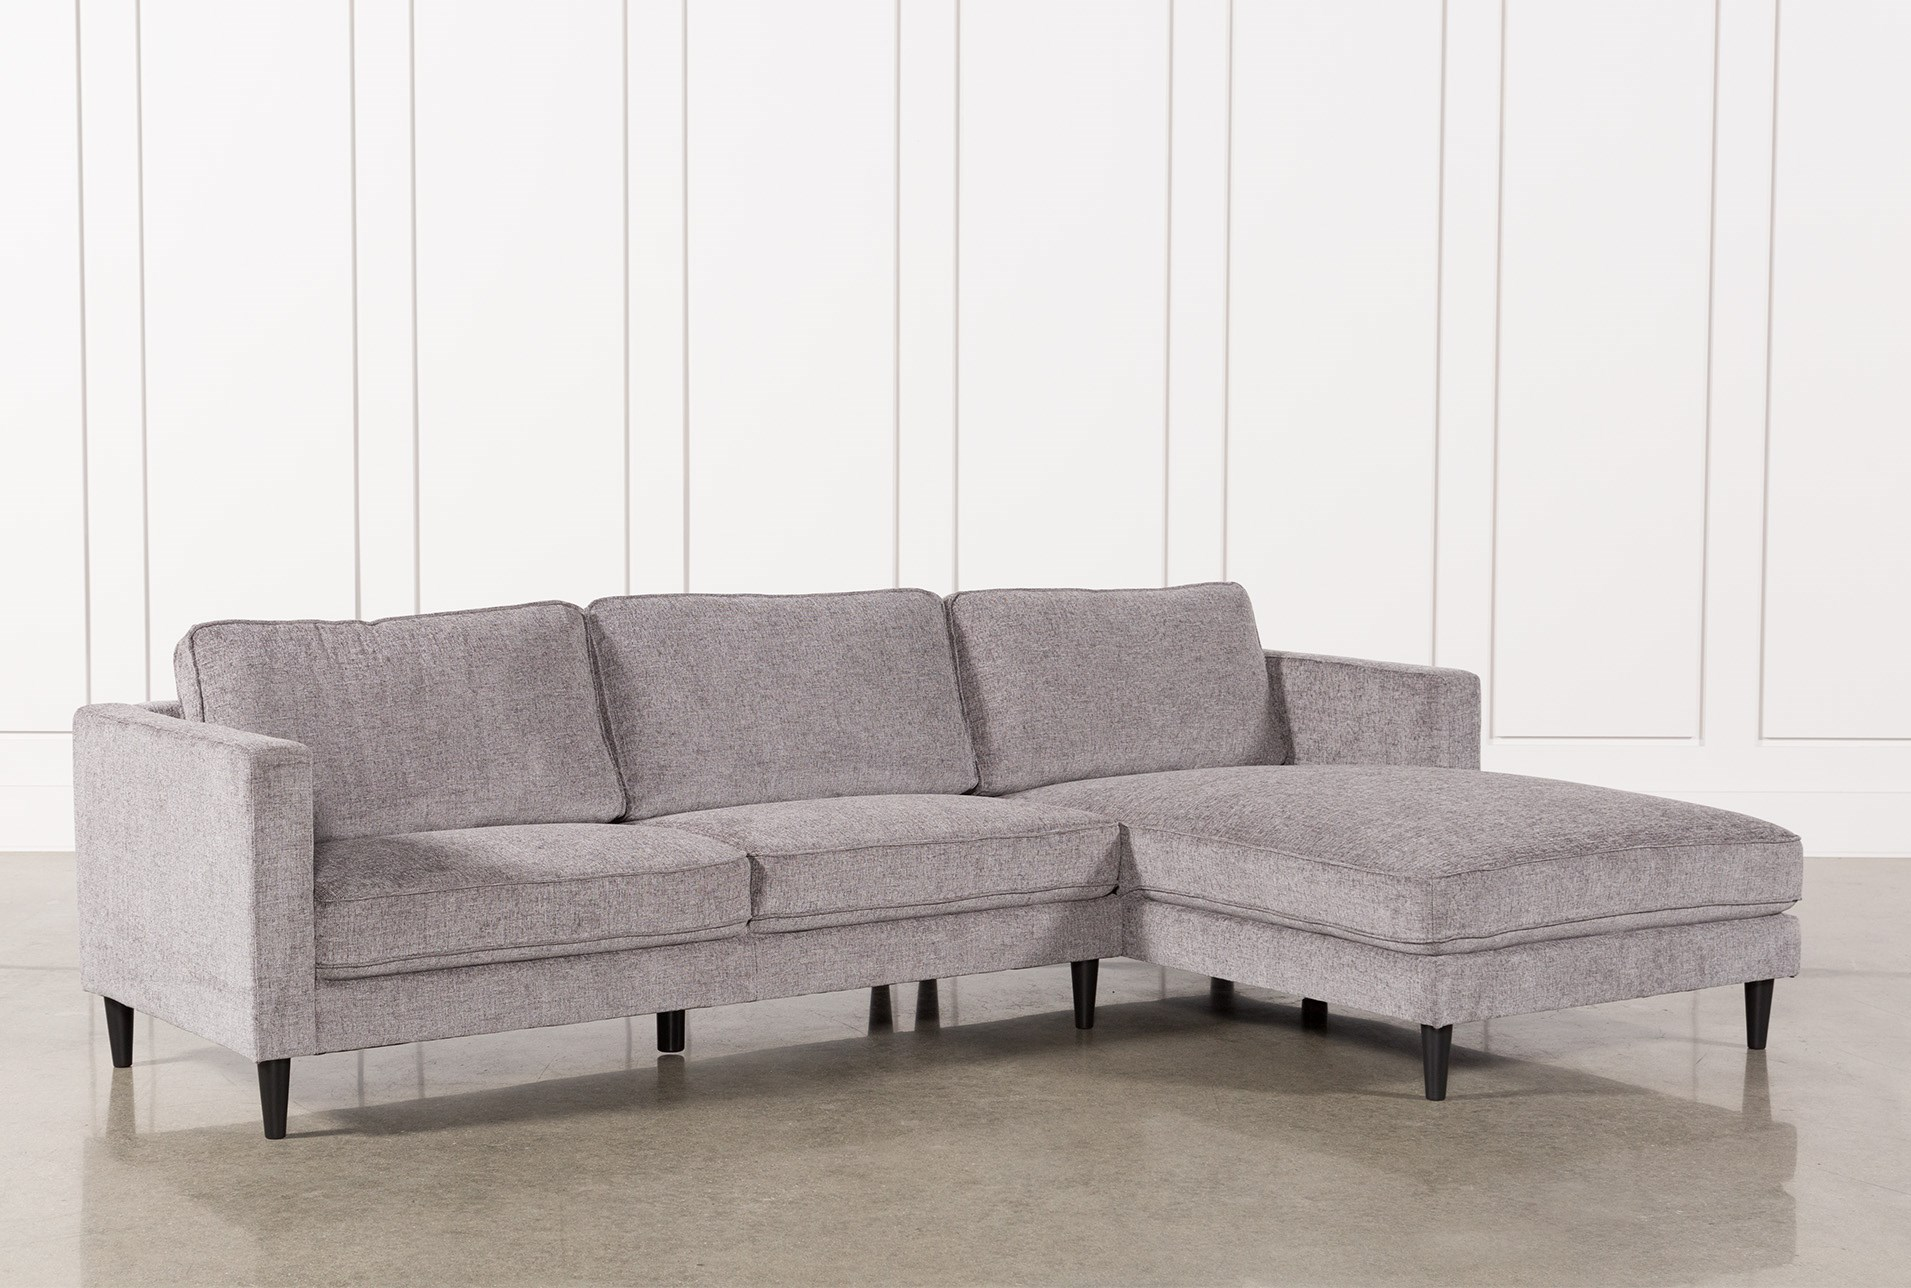 sectional home cushion grey delightful sofa graceful chaise marvelous with couch covers gray